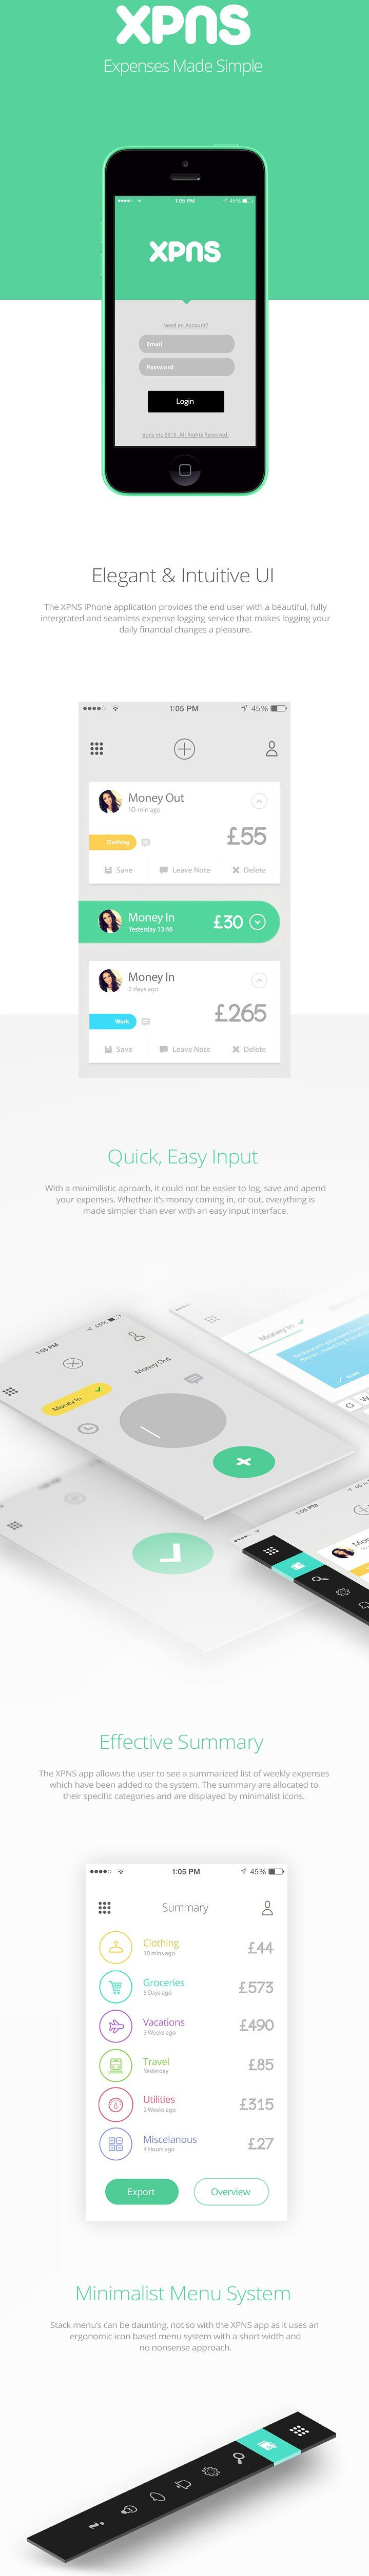 Daily Mobile UI Design Inspiration #502